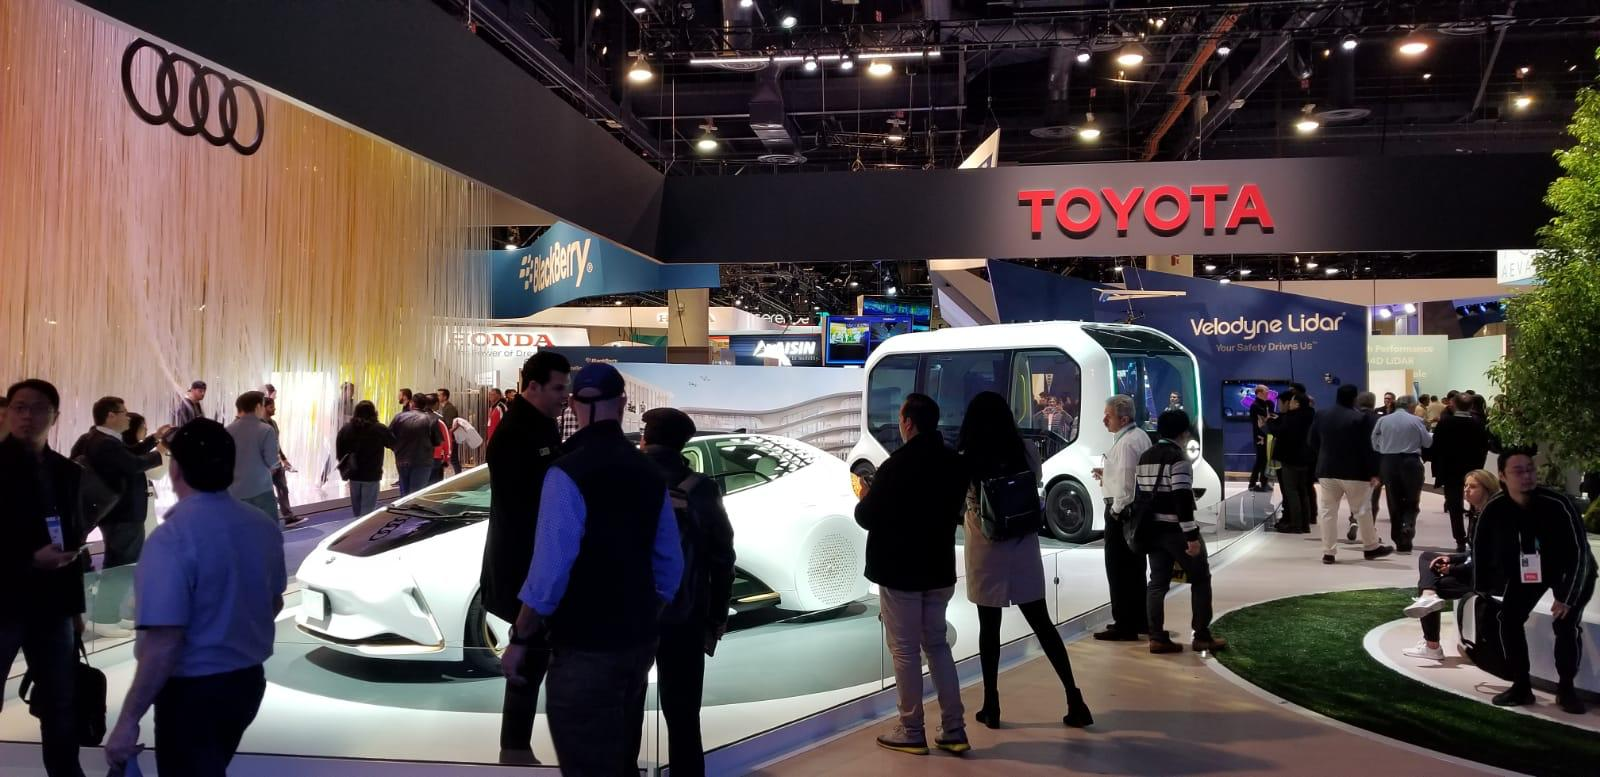 Leaders of the automotive industry, including Toyota and Audi, gathering at the show